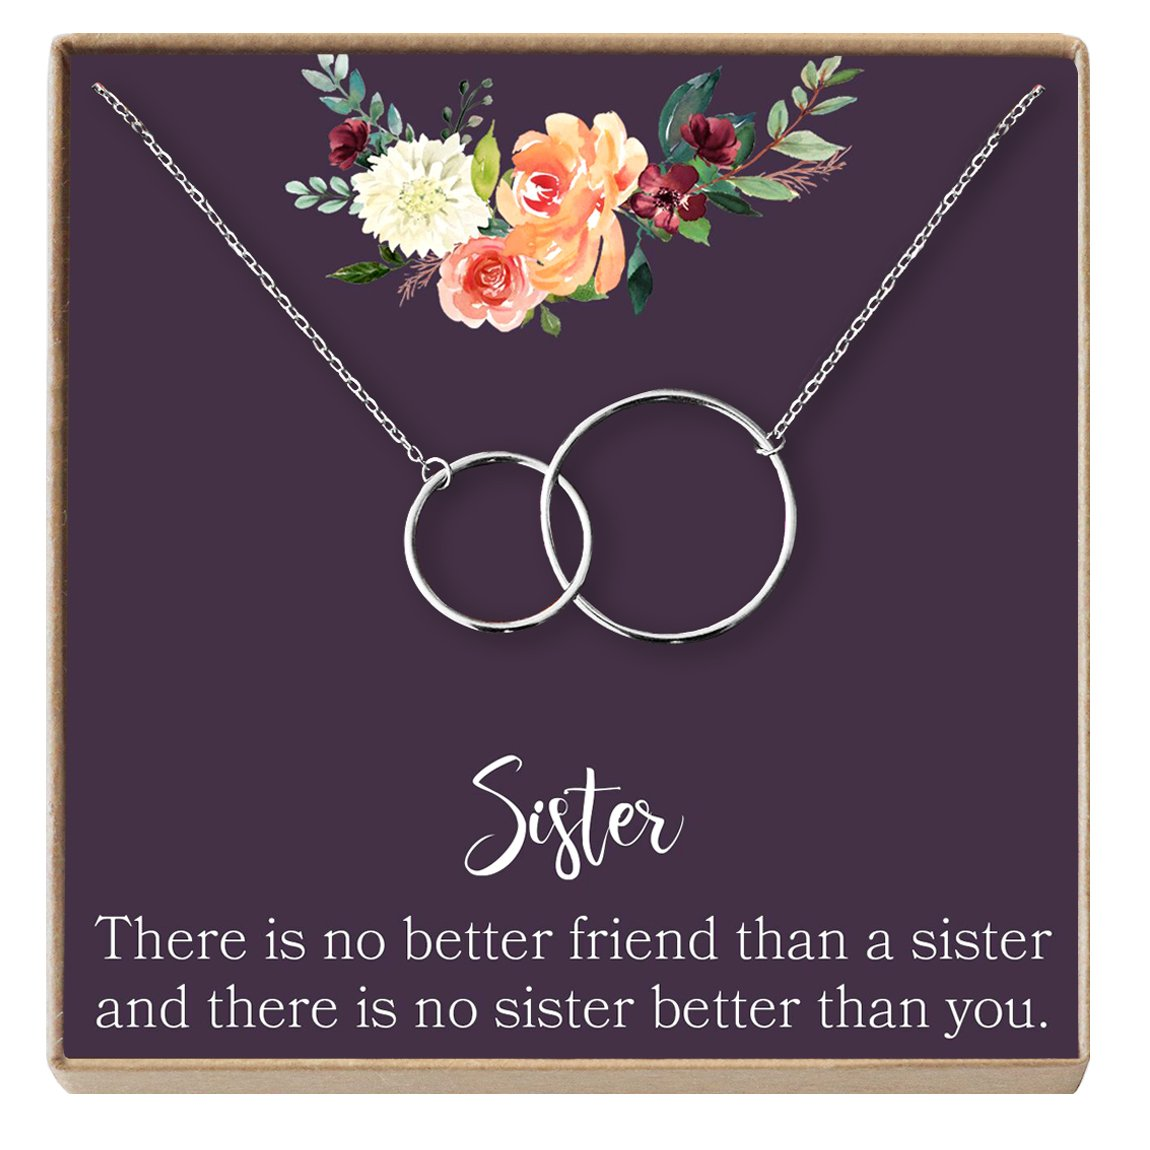 Dear Ava Sisters Gift Necklace: Gift for Sister, Sister Birthday Gift, Big Sister Gift, There Is No Better Friend Than a Sister, 2 Interlocking Circles (silver-plated-brass, NA)